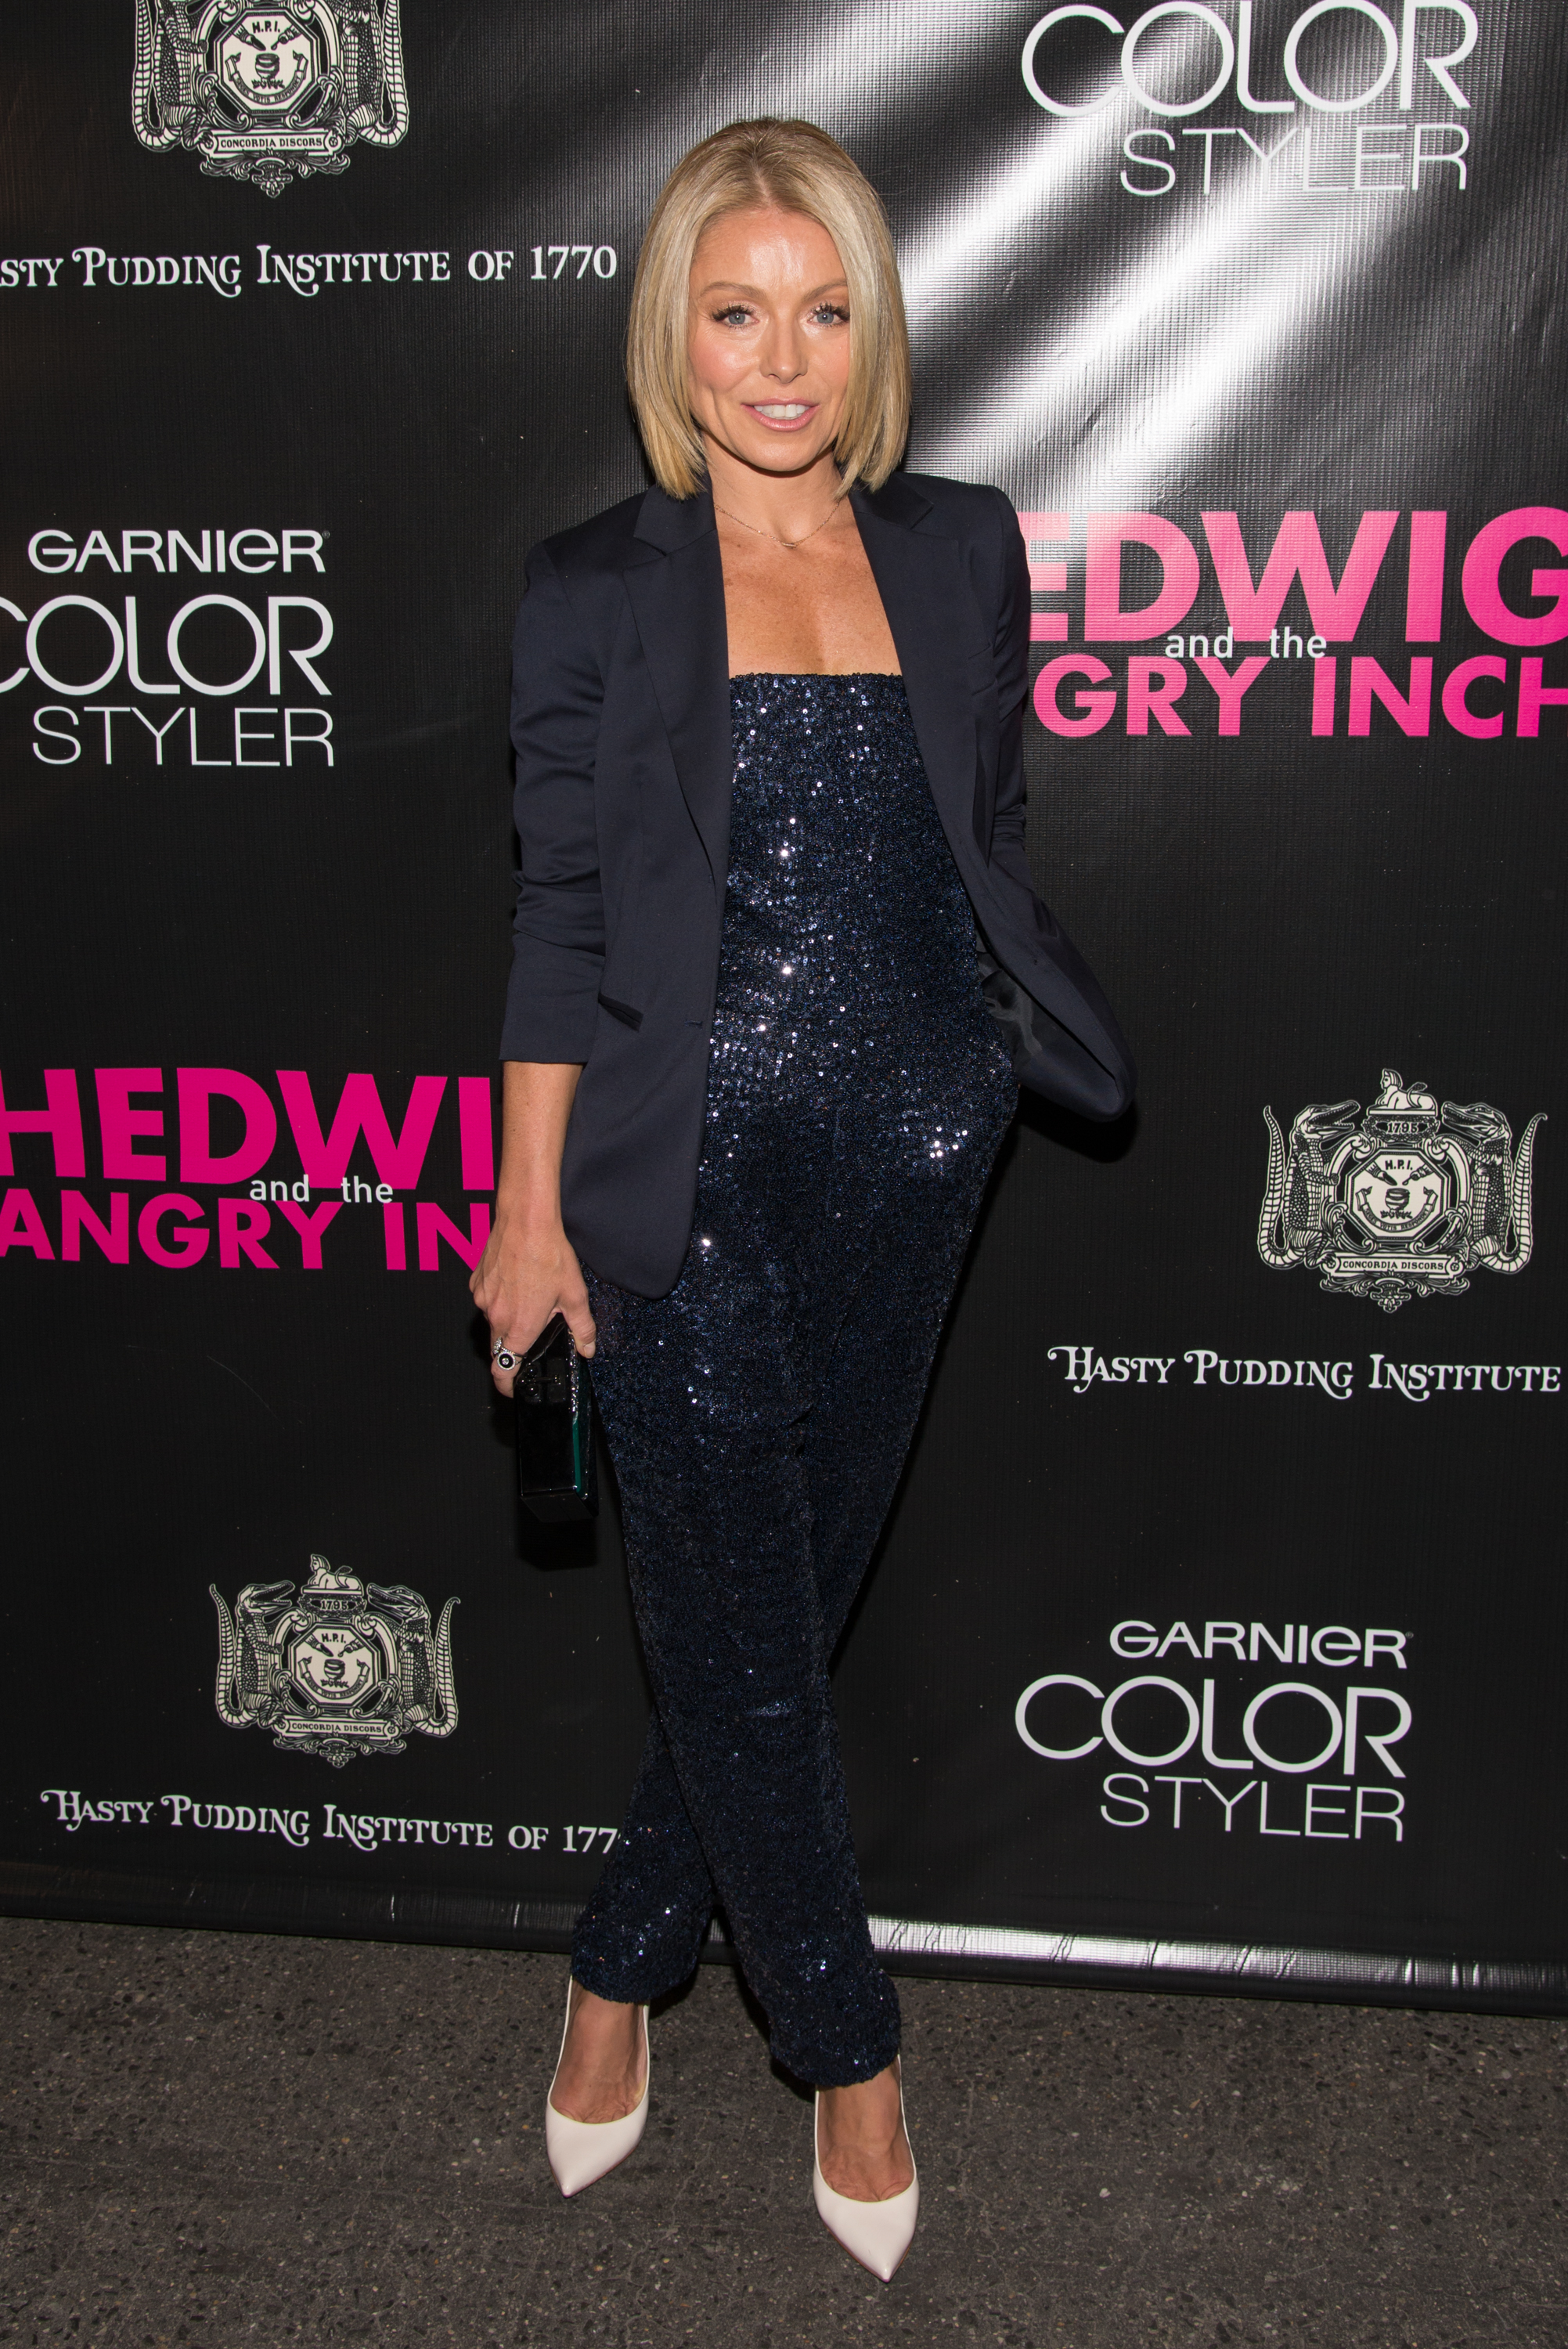 Hedwig And The Angry Inch Broadway premiere was full of glamor and attitude [GALLERY]